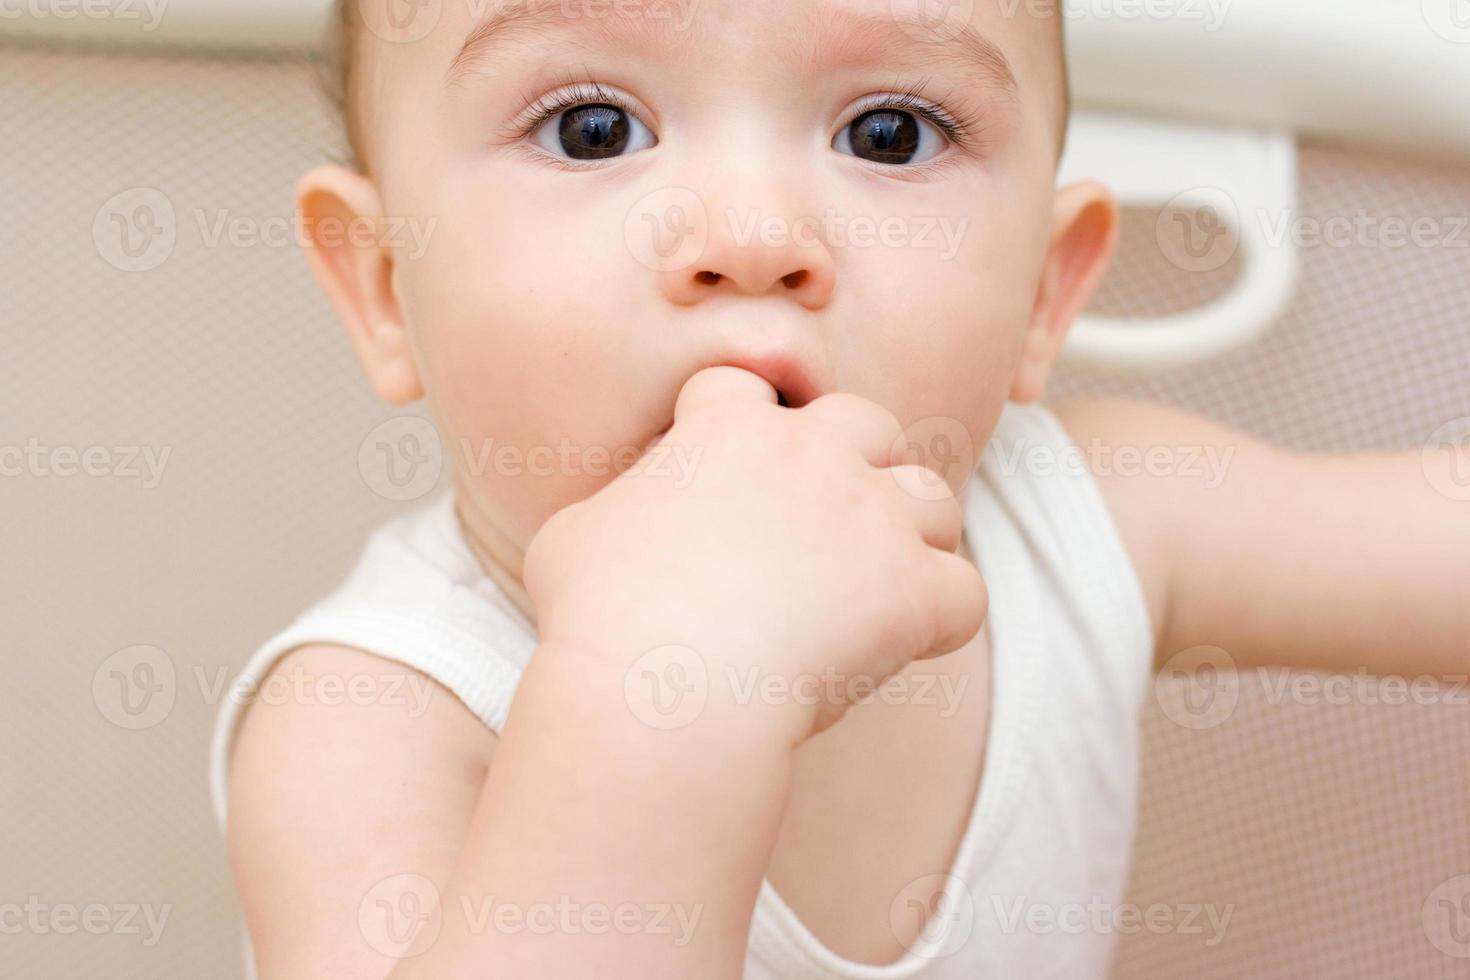 Fun caucasian baby with finger in his mouth photo